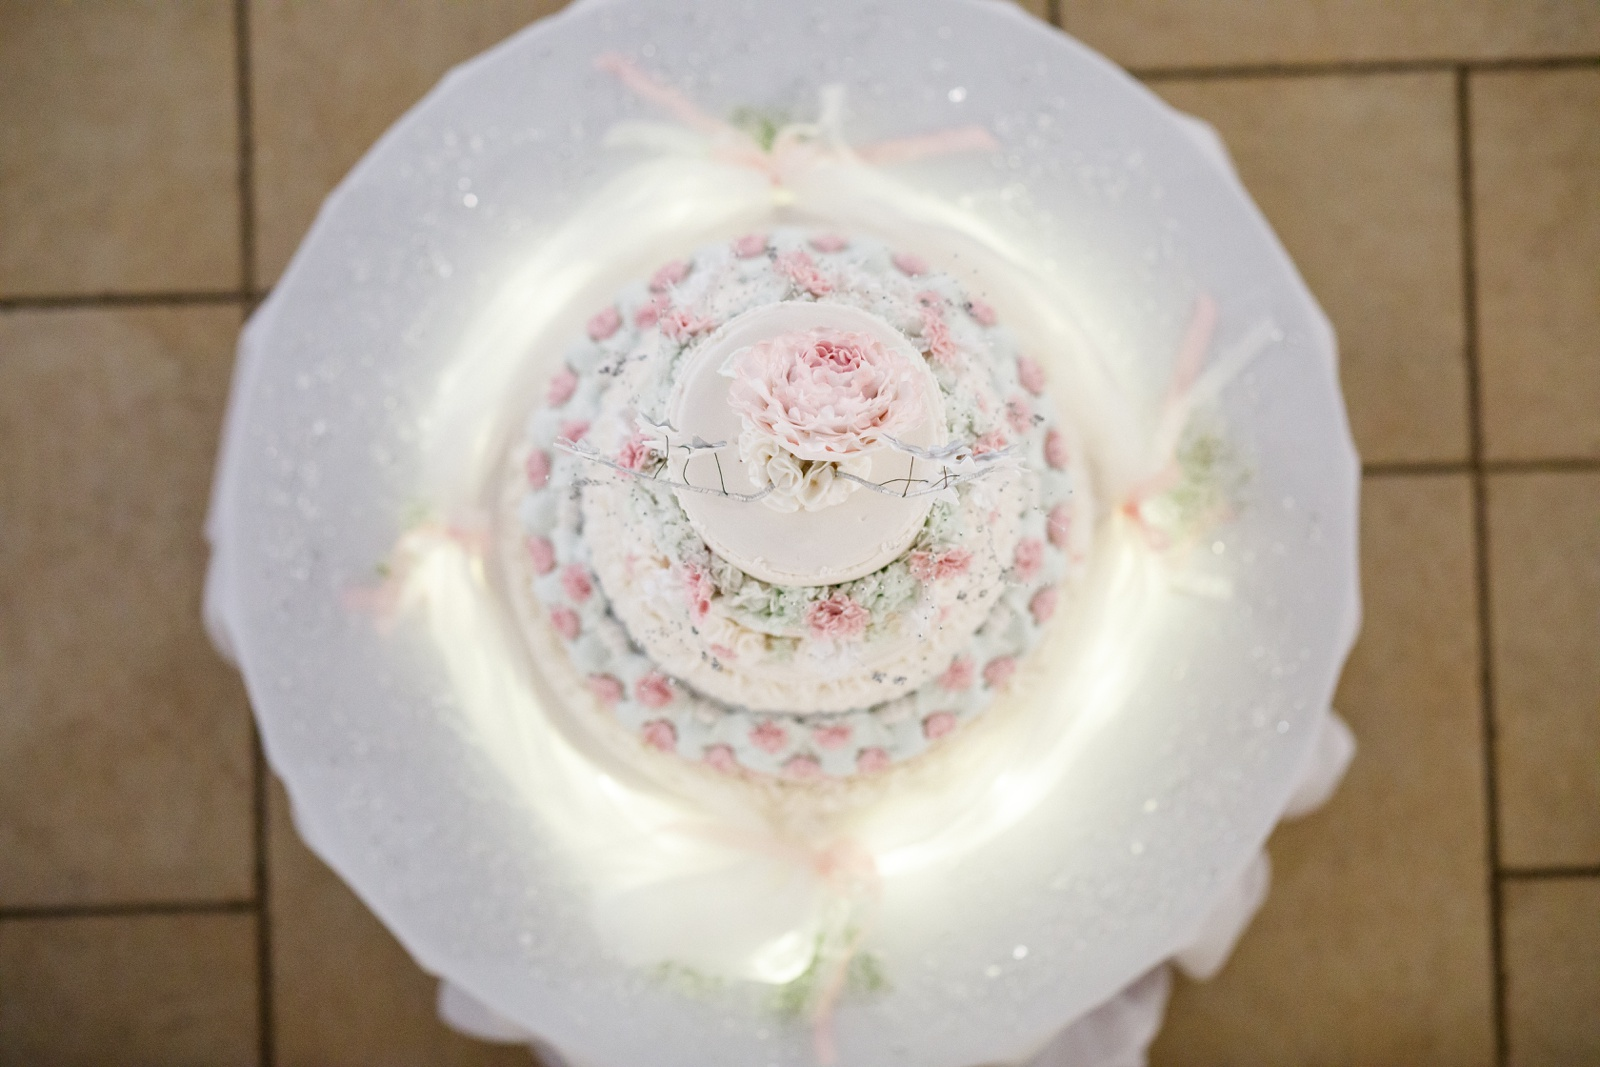 Colour picture of a wedding cake from above